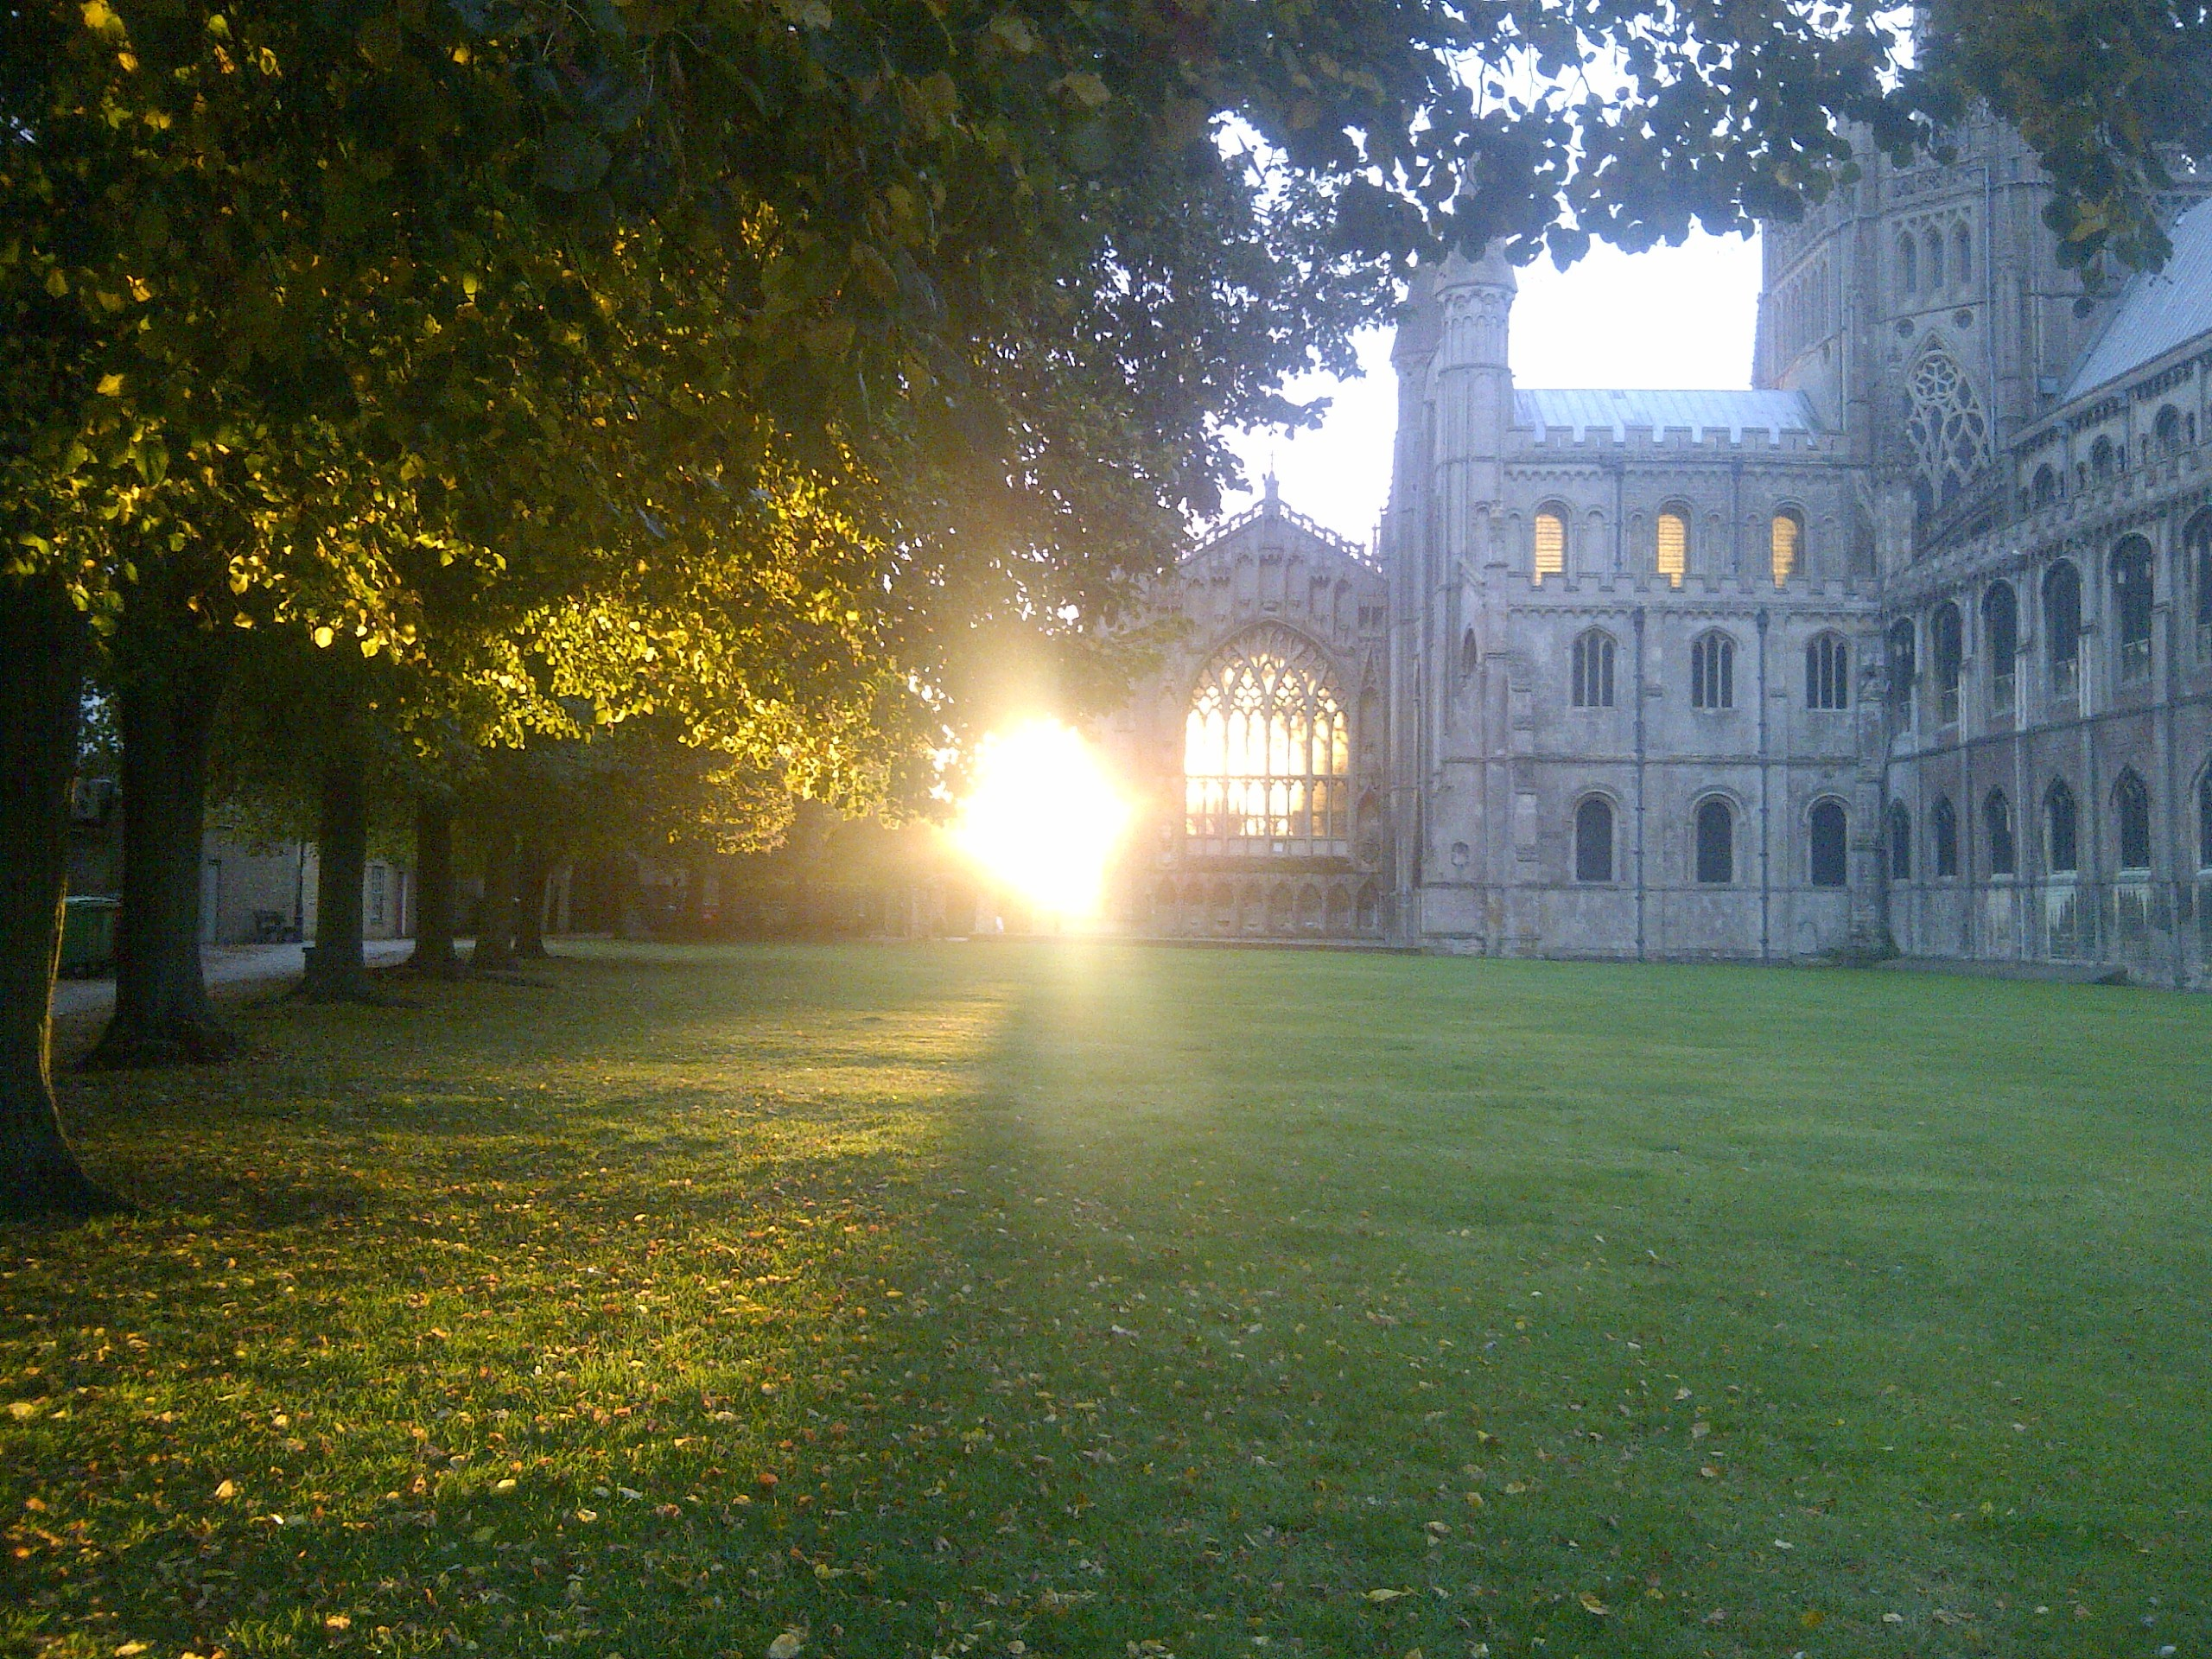 Ely cathedral with the sun rising